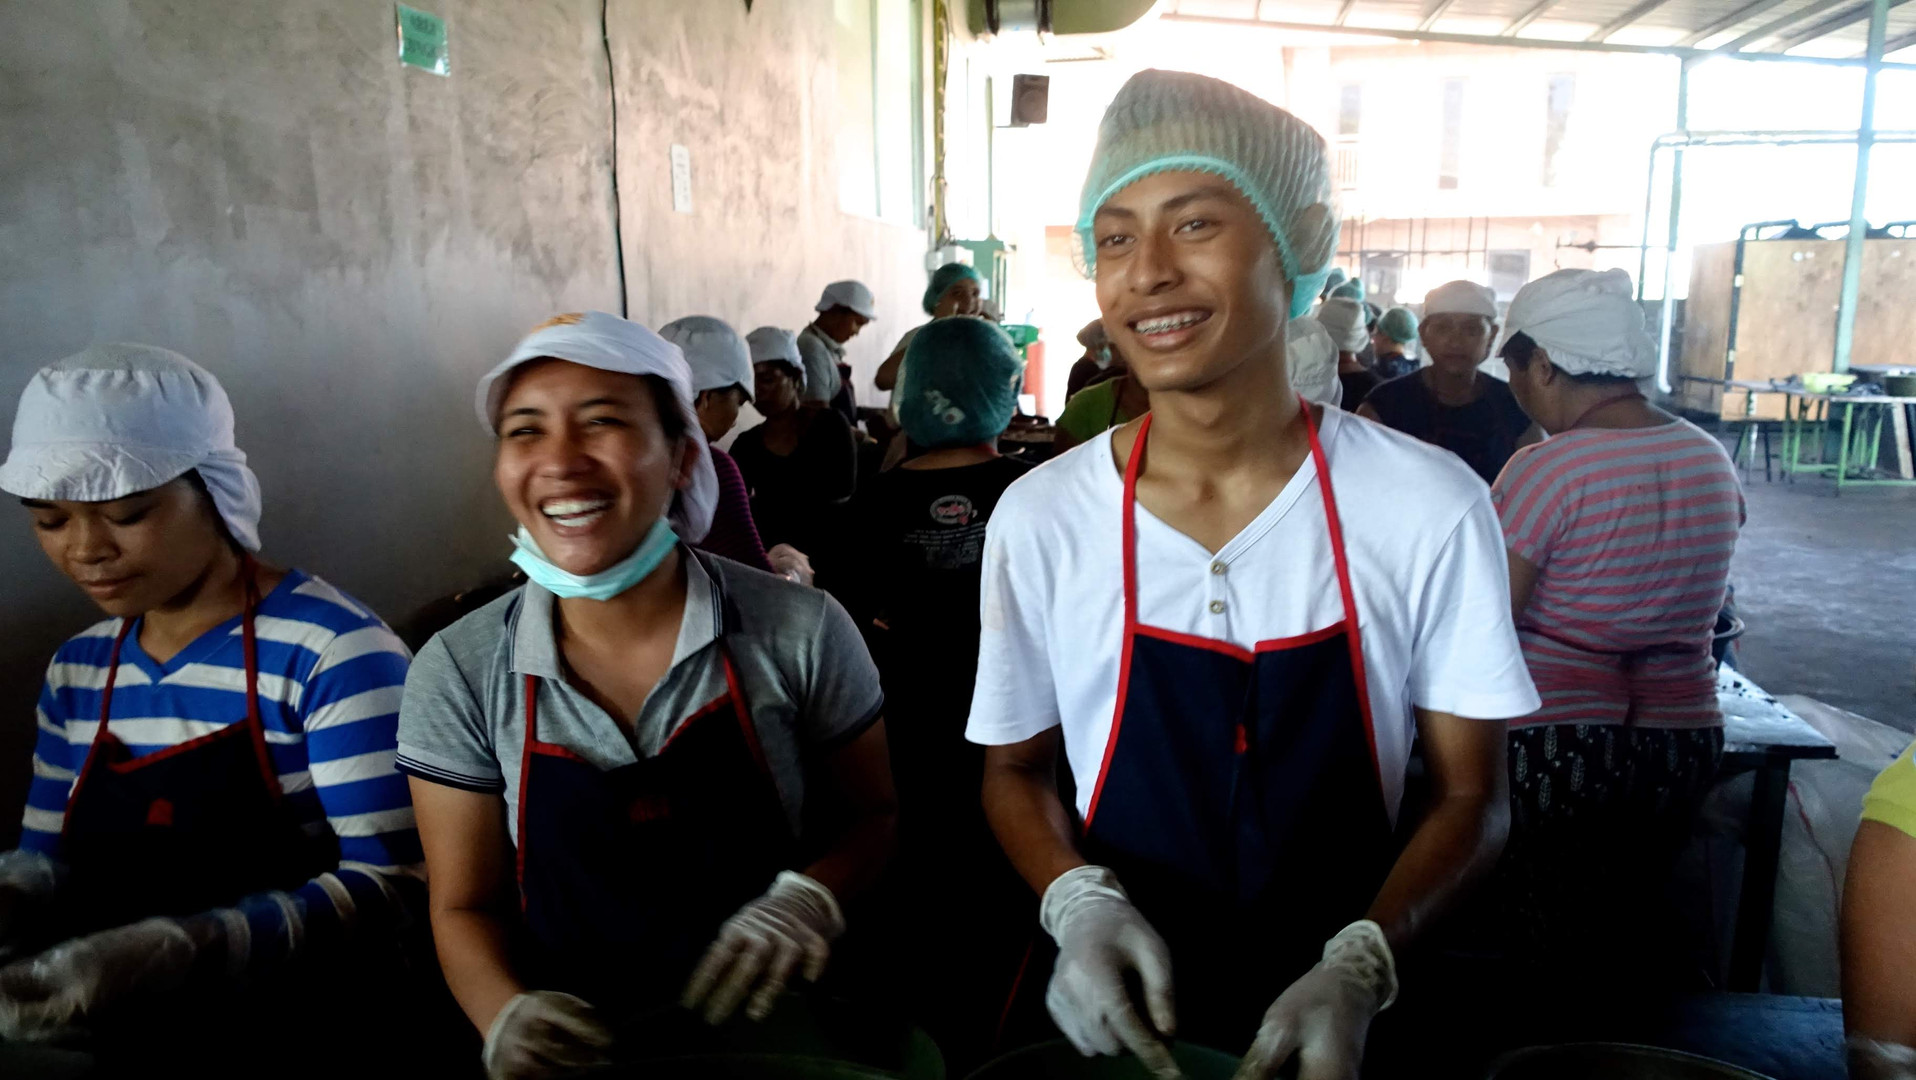 Our cashew factory is the ideal place for hands-on service learning activities, like peeling cashews alongside our local staff